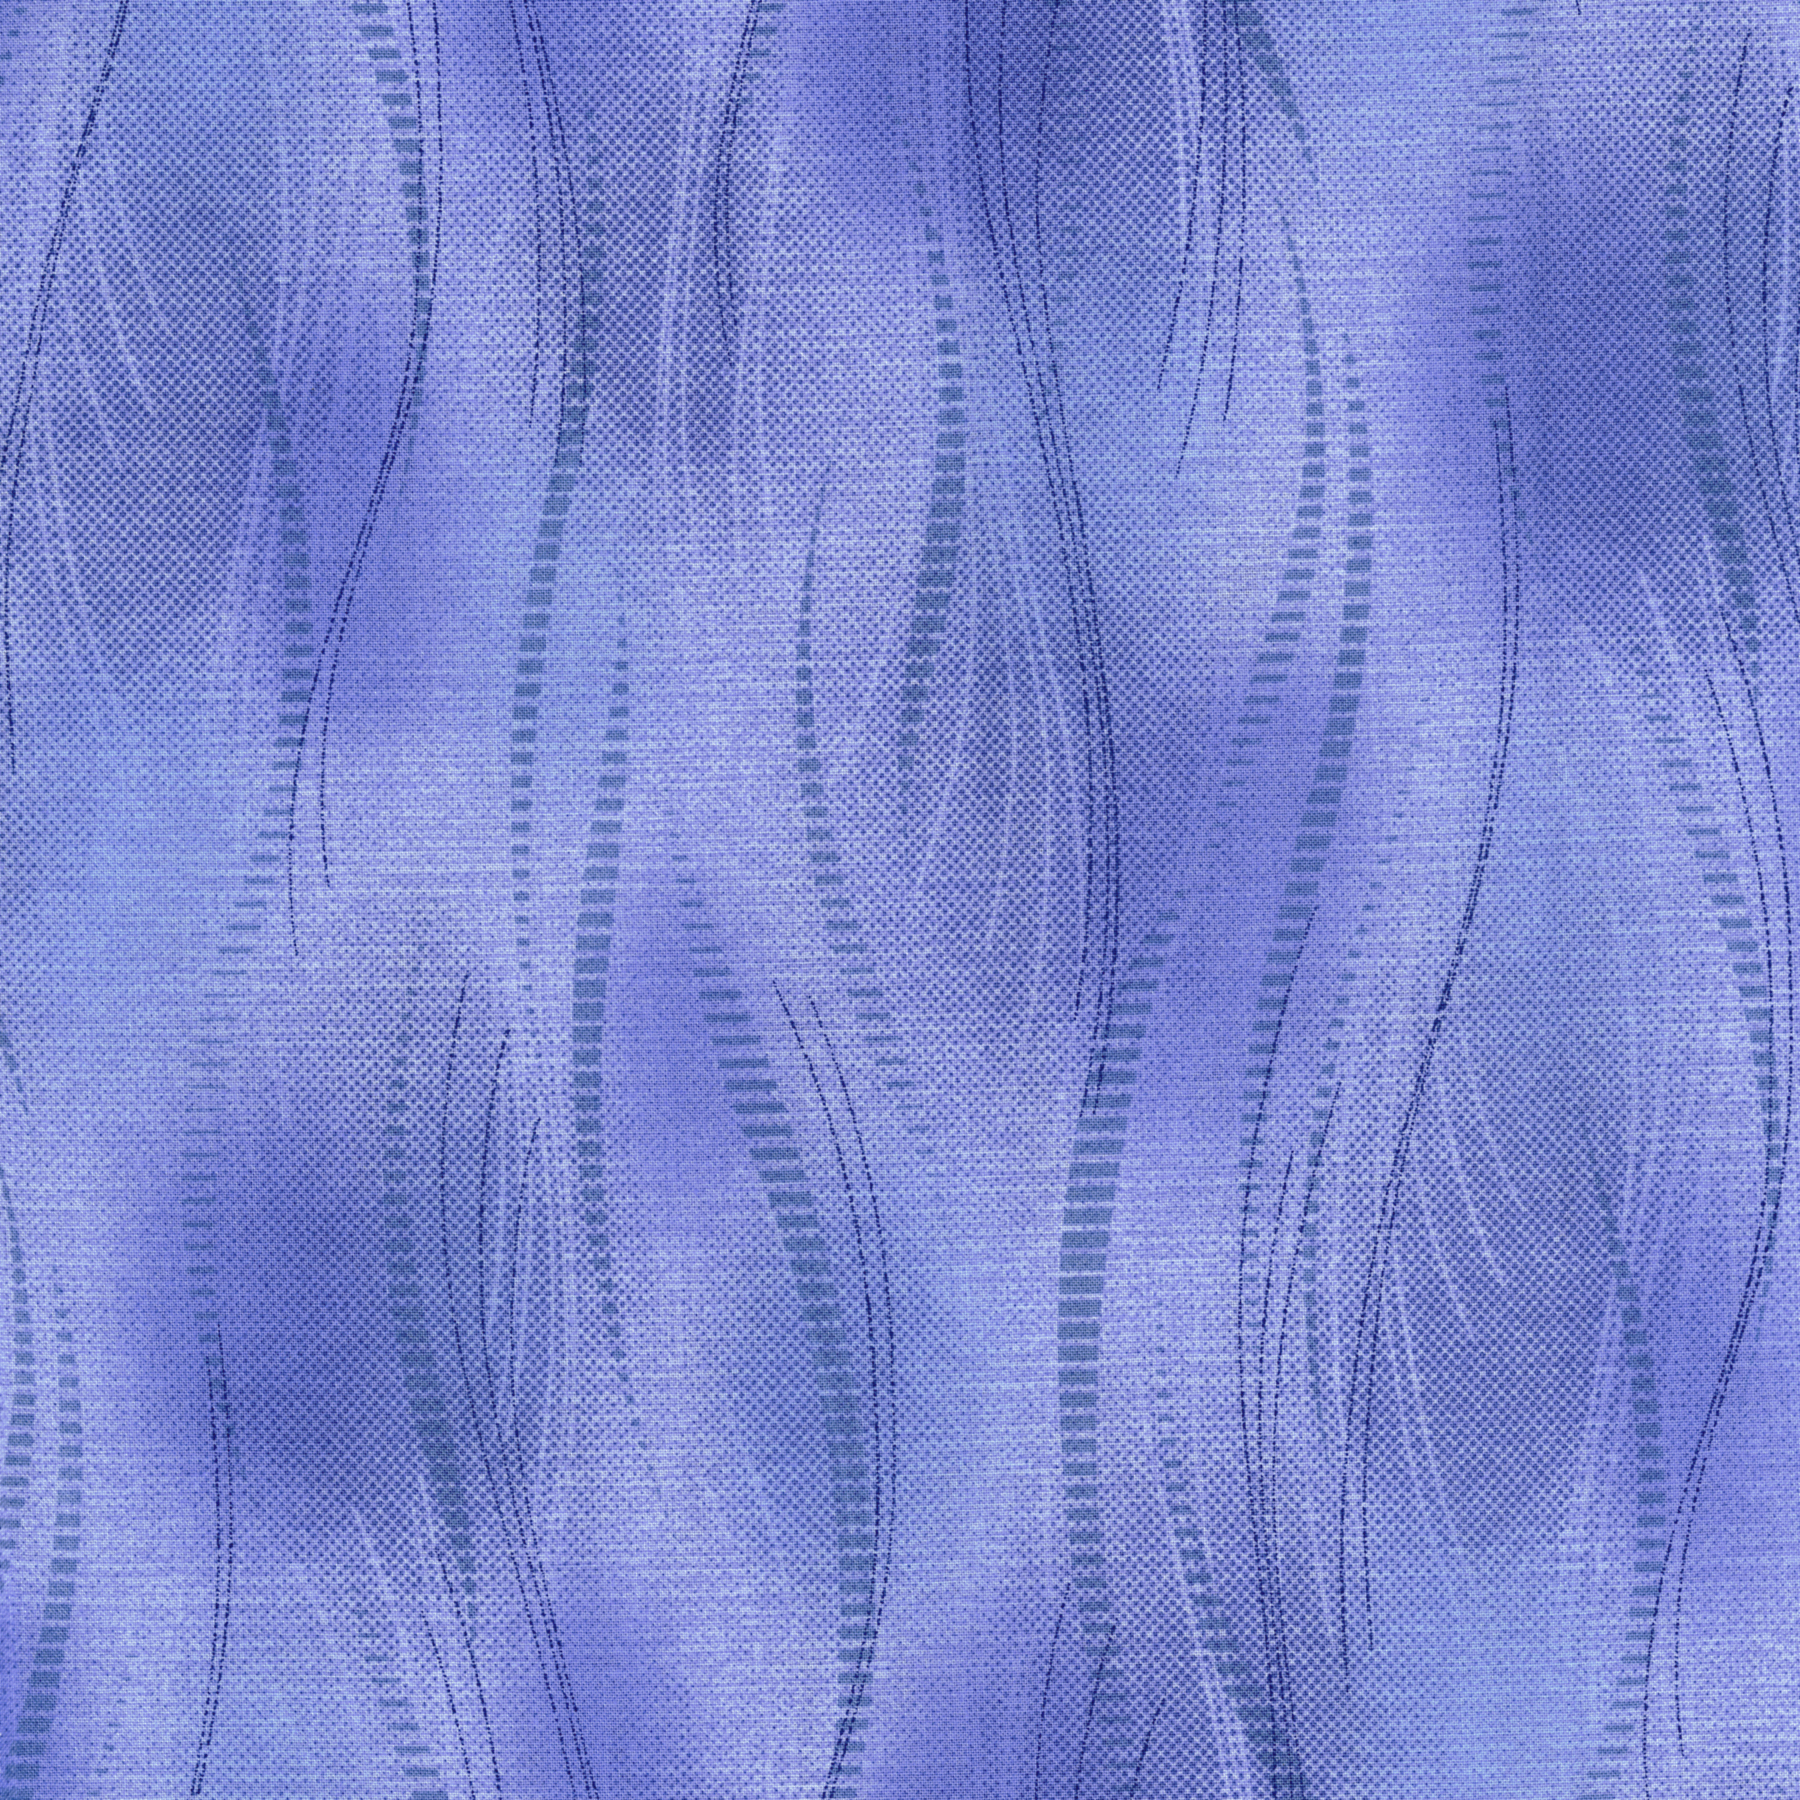 2798-006 WOVEN MATTS PERIWINKLE